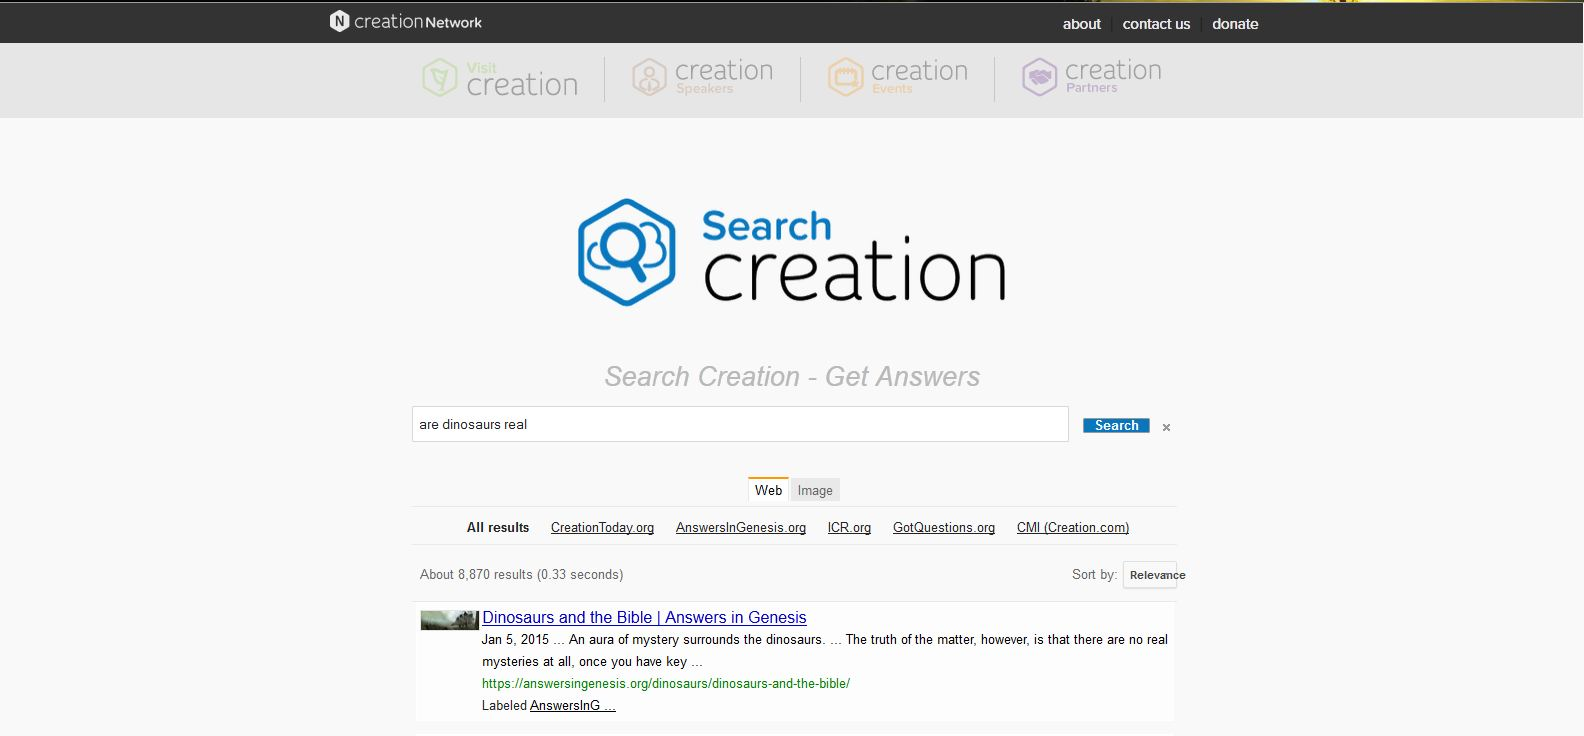 SearchCreation: The Christian Biblical Web Browser